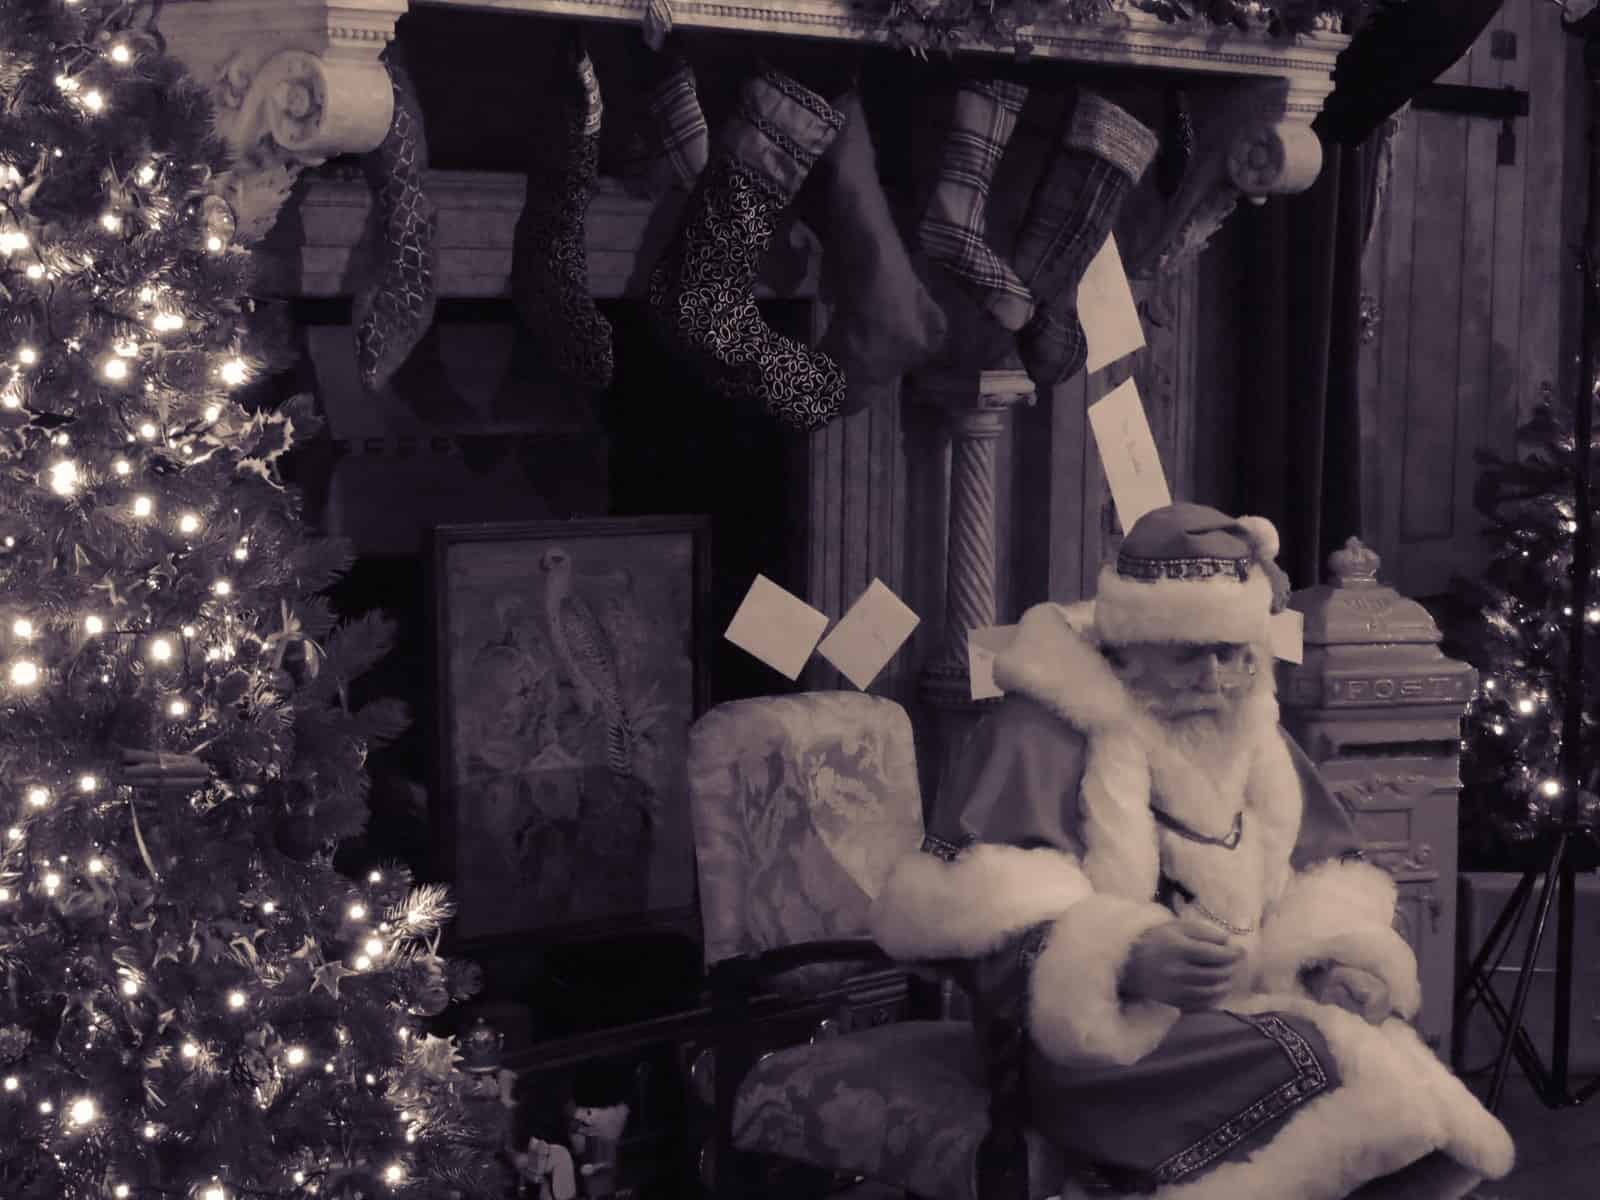 A black and white photo of Santa sat in front of a fireplace with stockings hanging from it with Christmas trees either side.